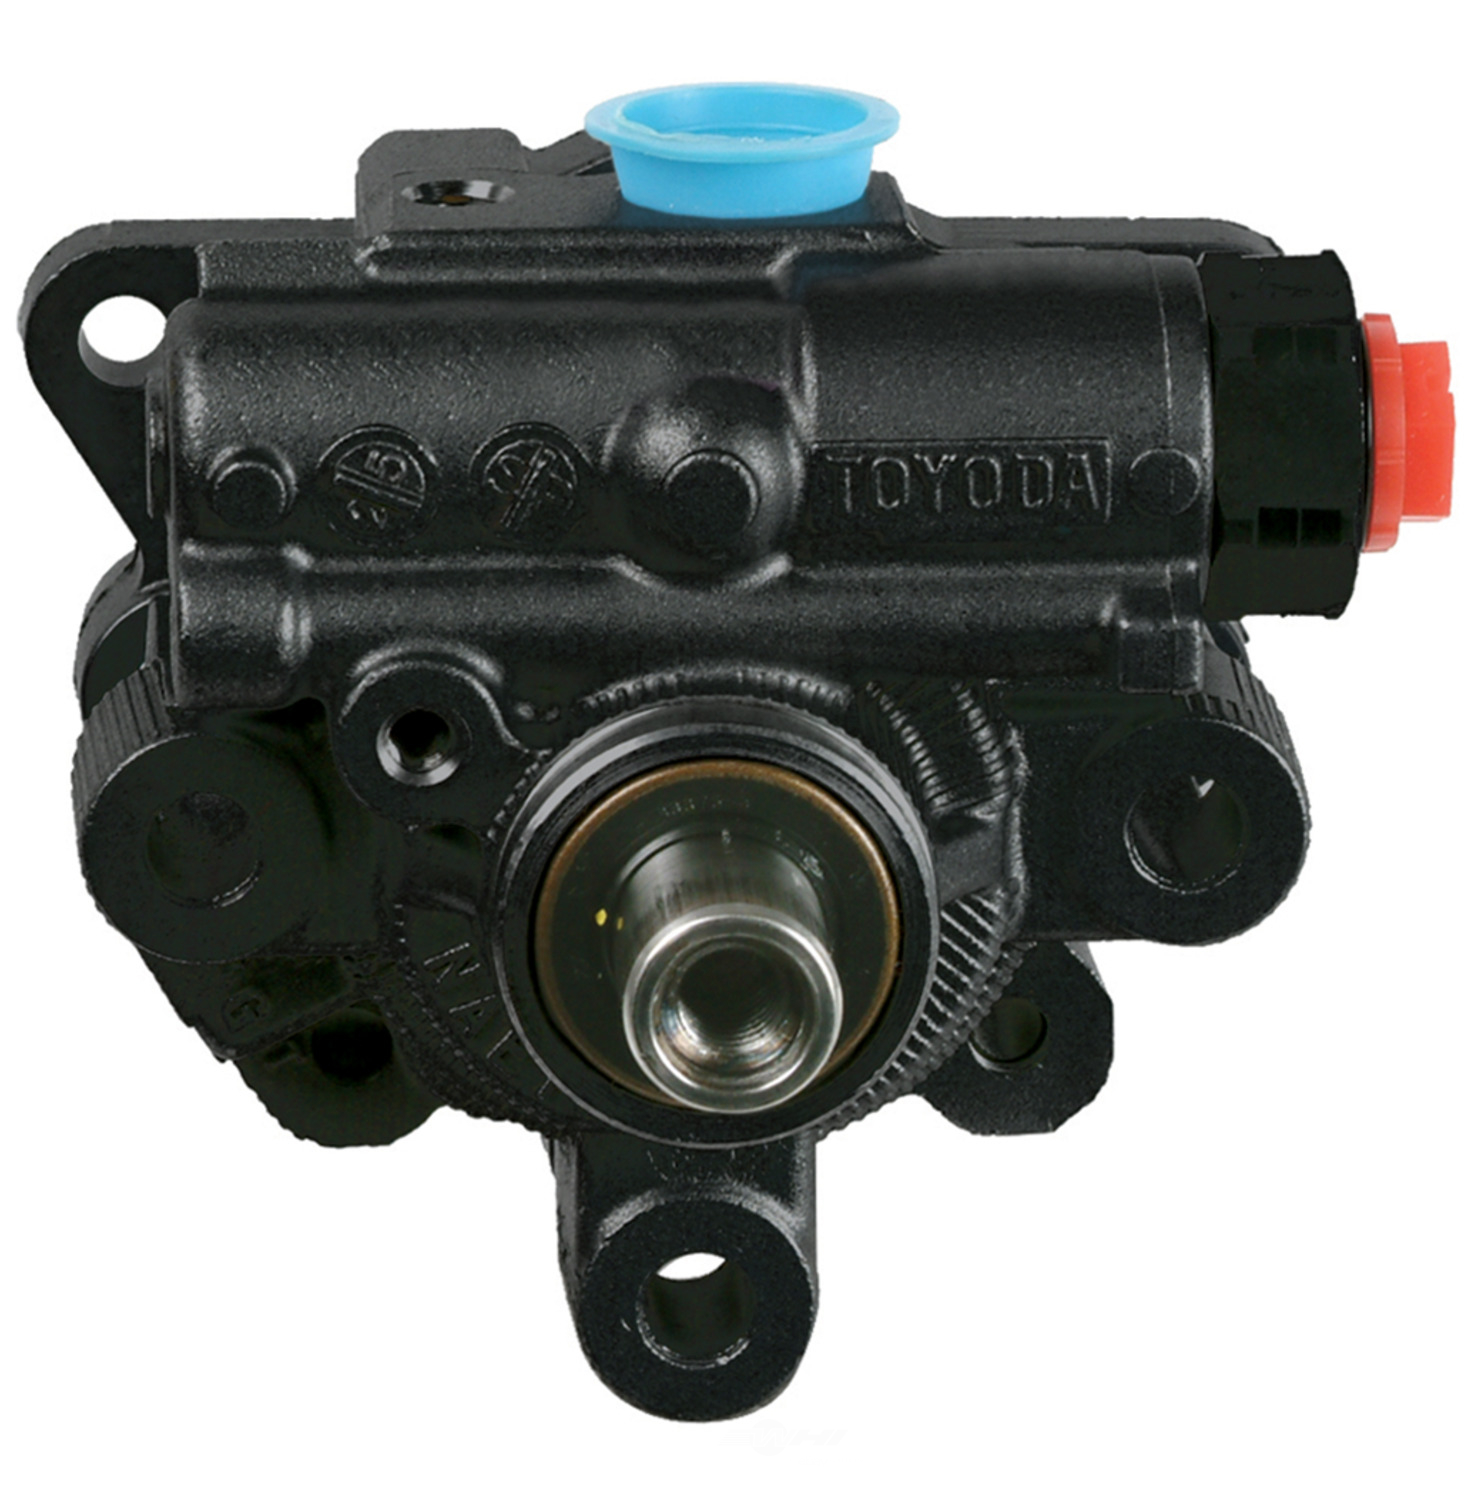 A1 CARDONE 20-2201 - Power Steering Pump - Reman - 202201